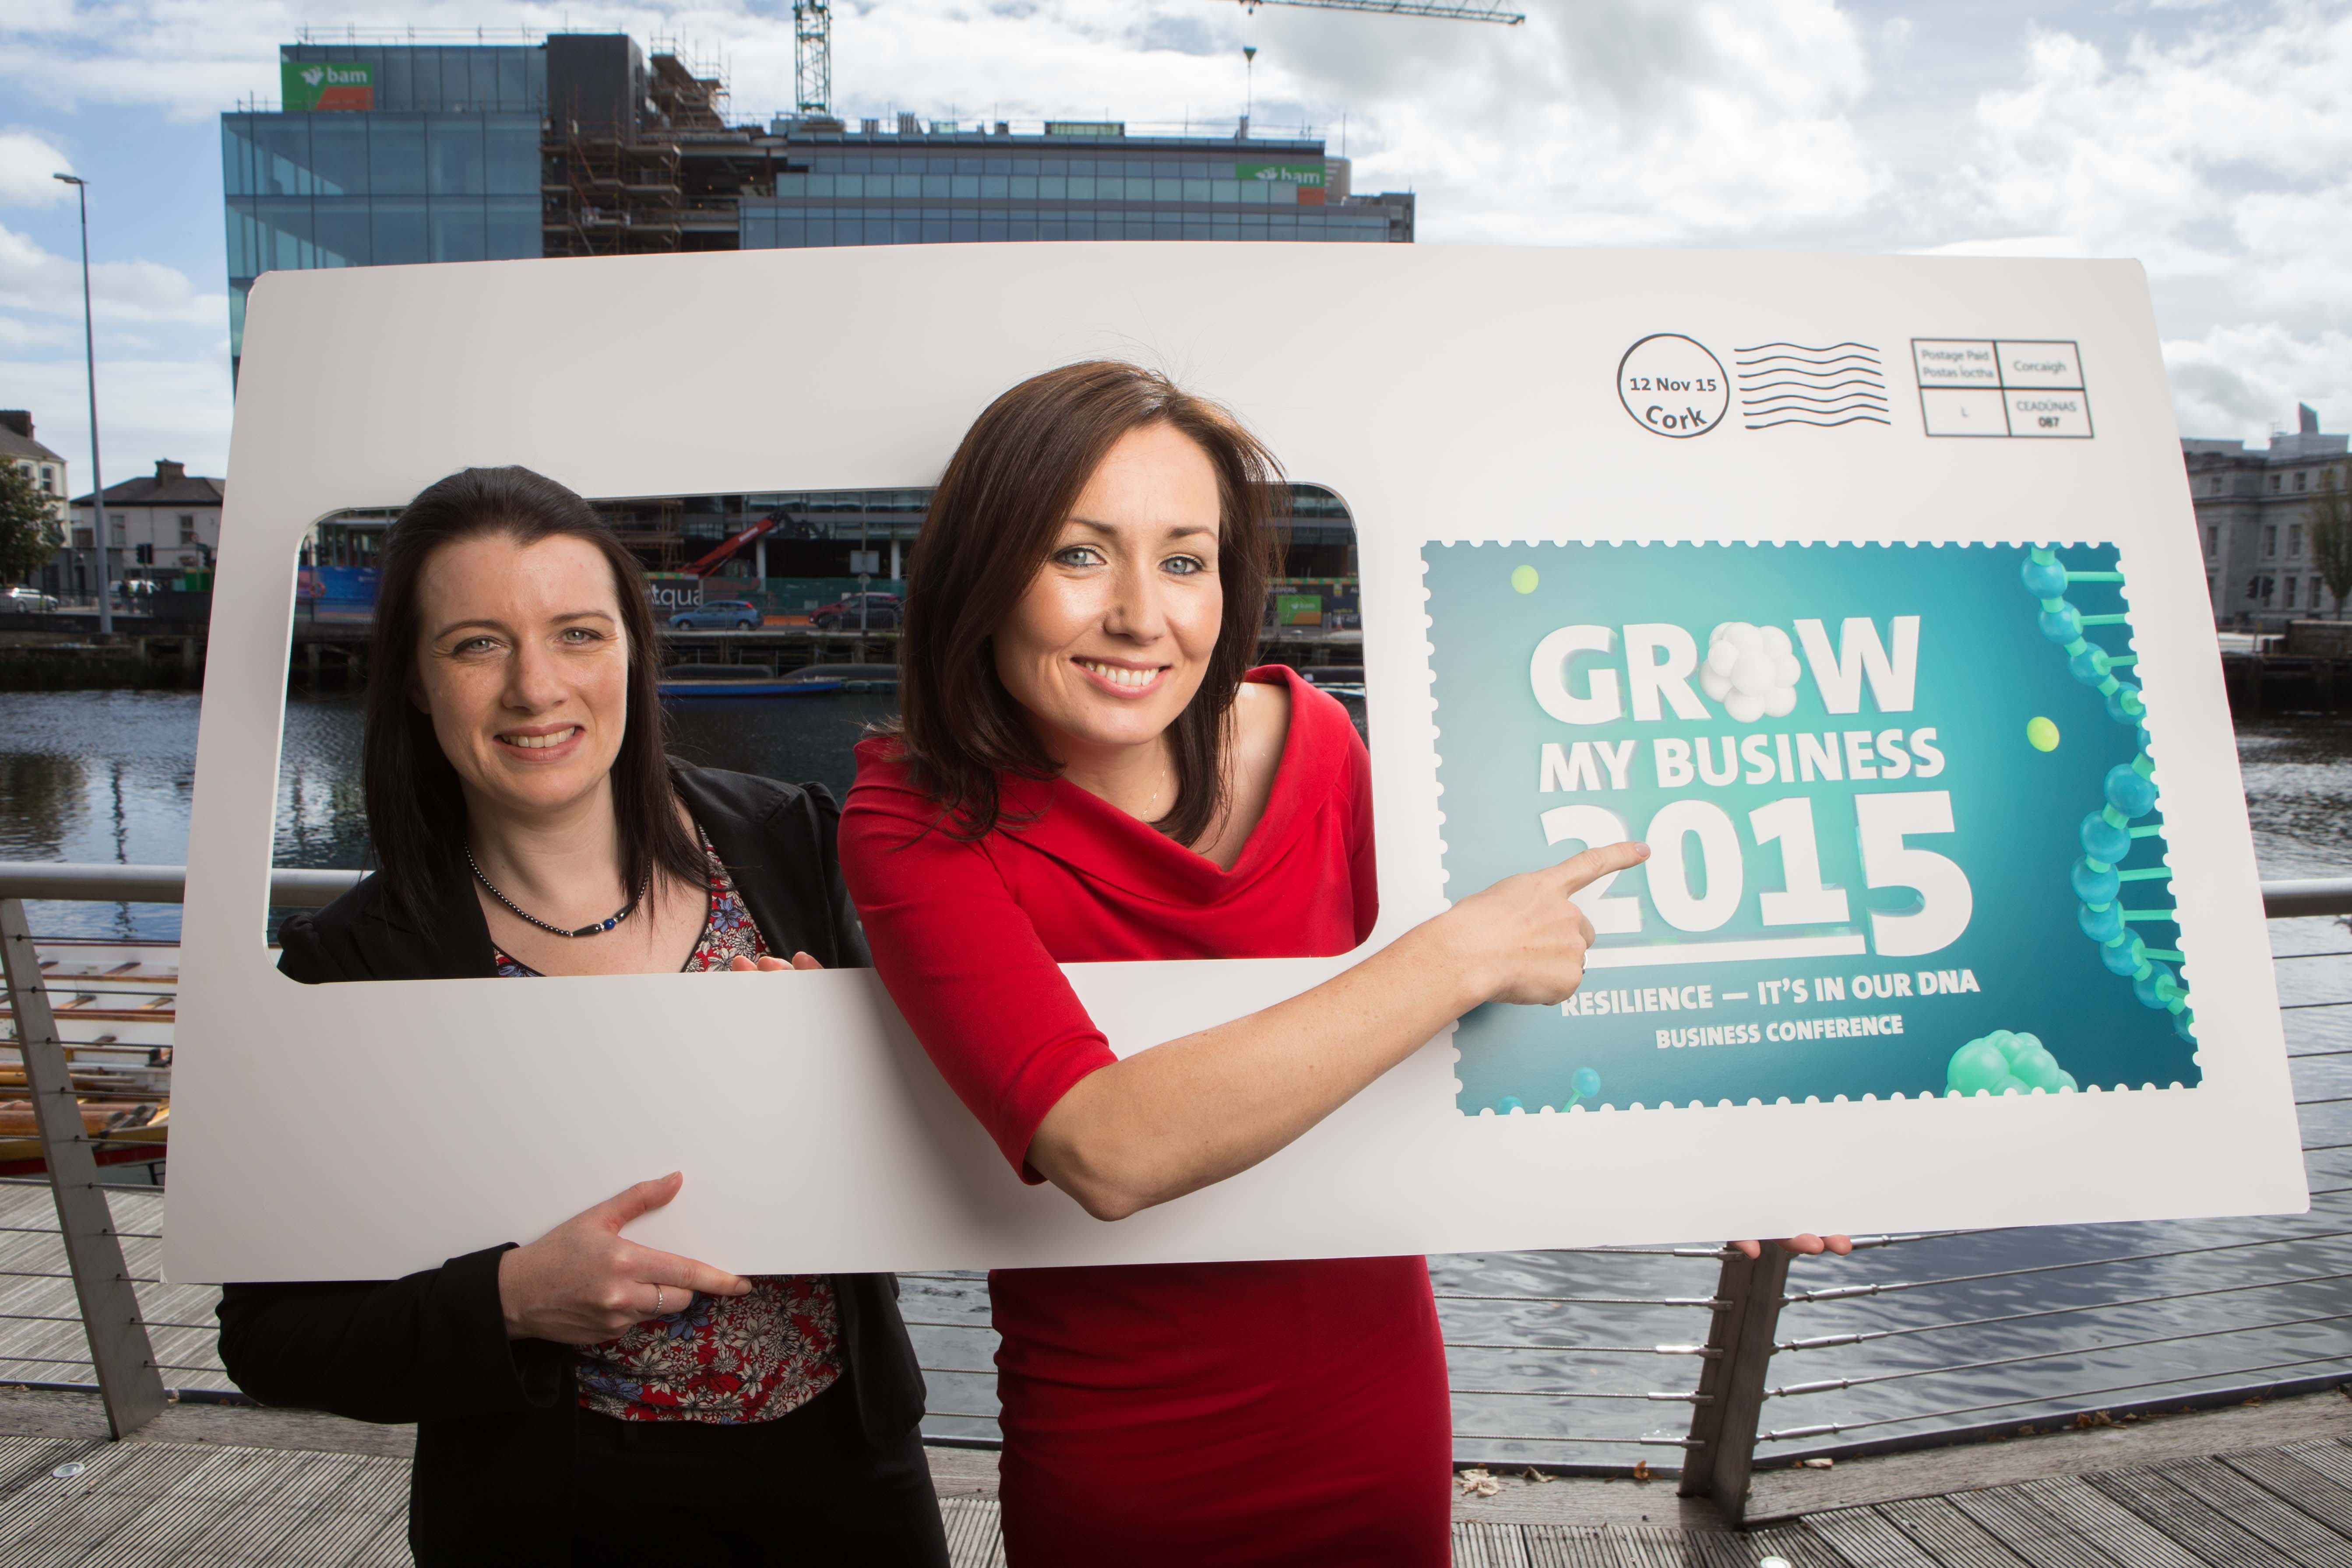 Cork Business owners invited to 'Grow My Business' event